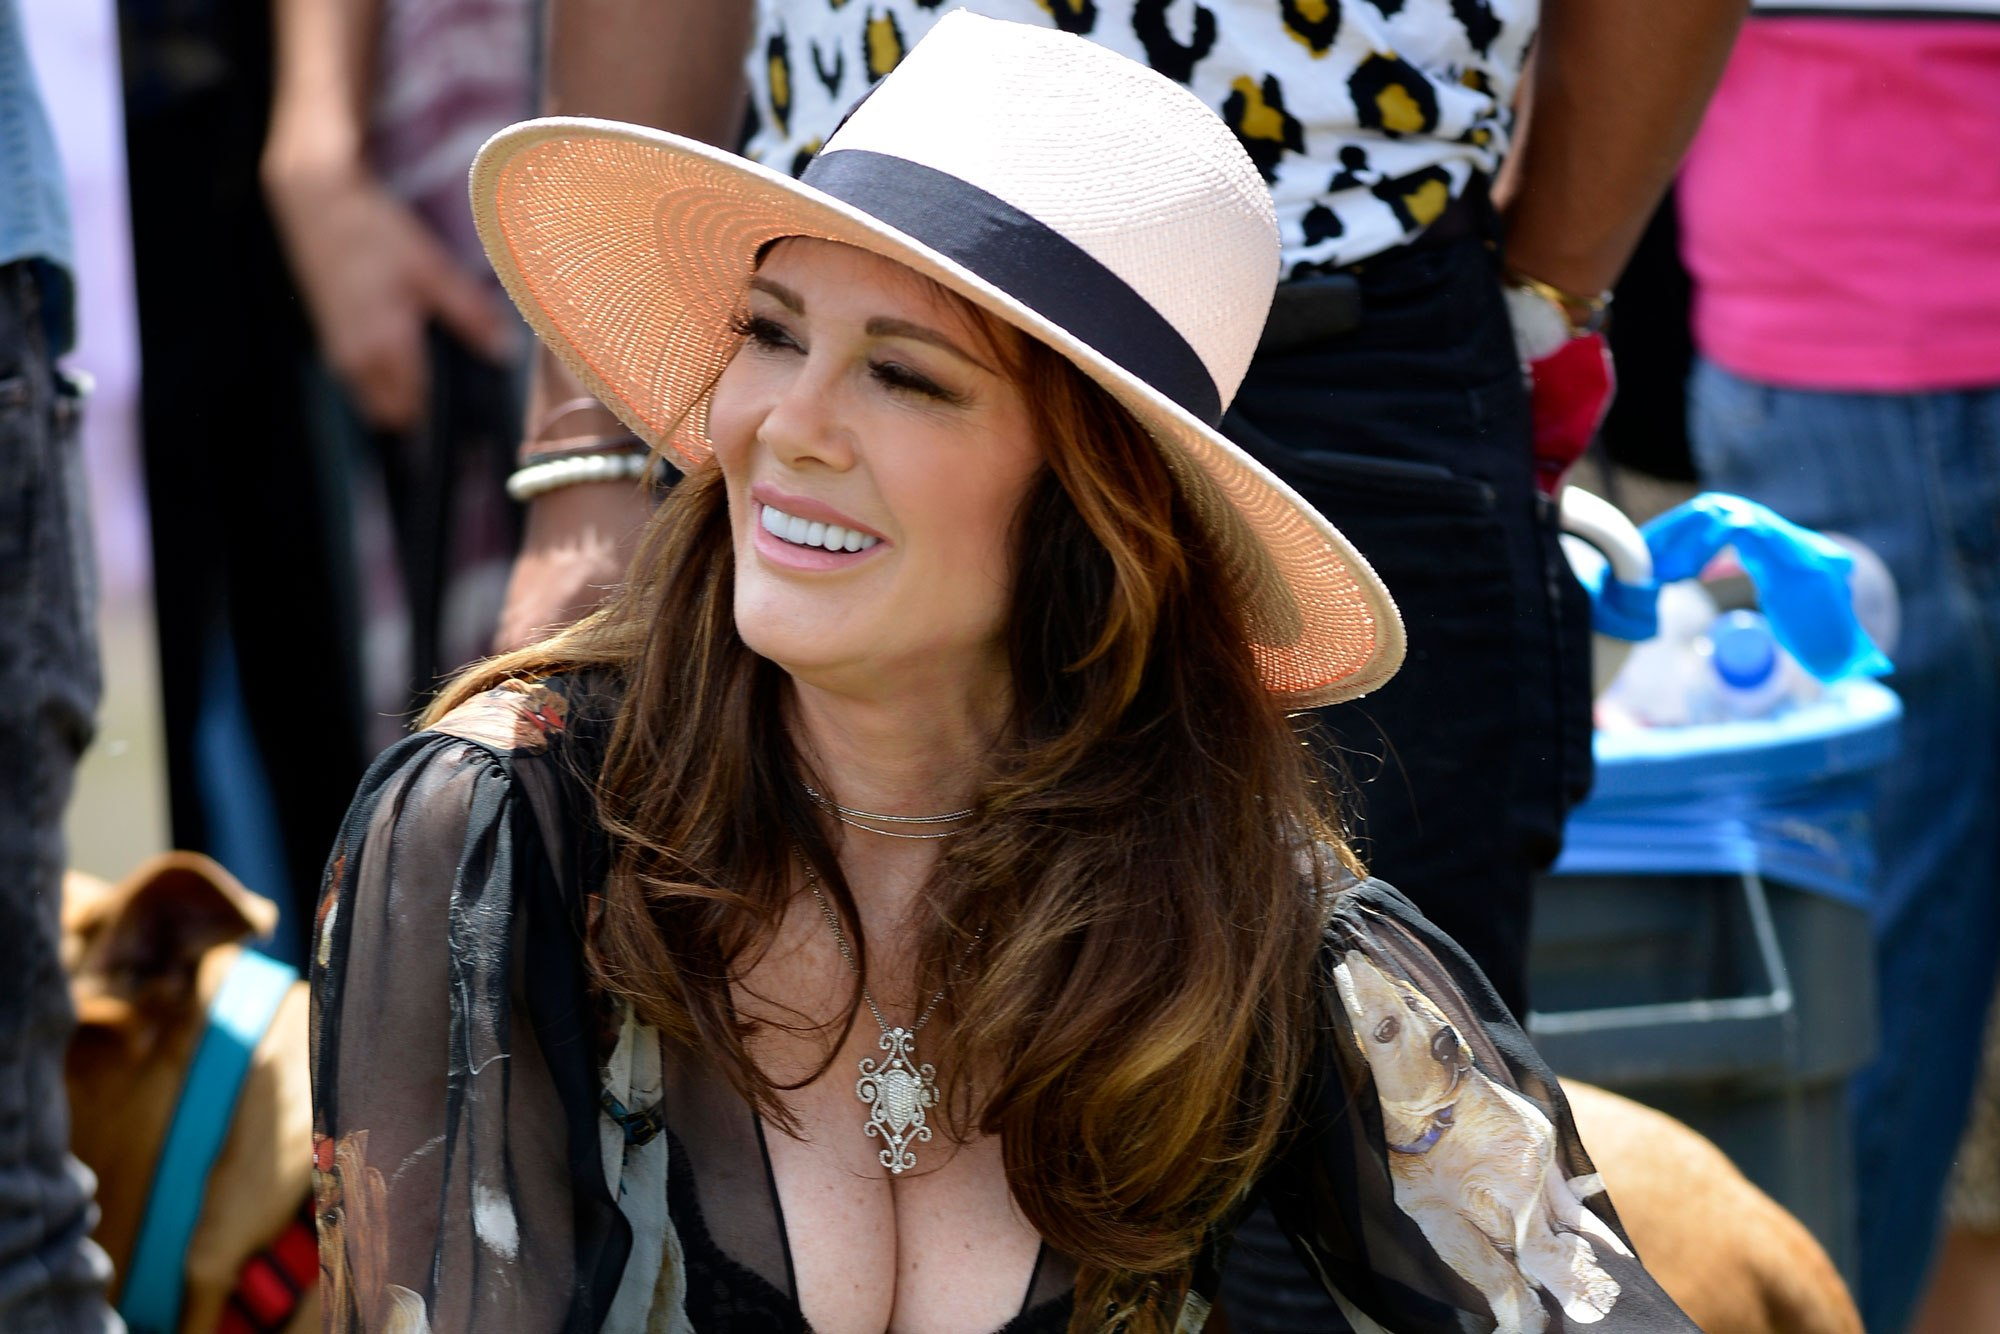 lisa-vanderpump-might-attend-the-rhobh-reunion-afterall-heres-why